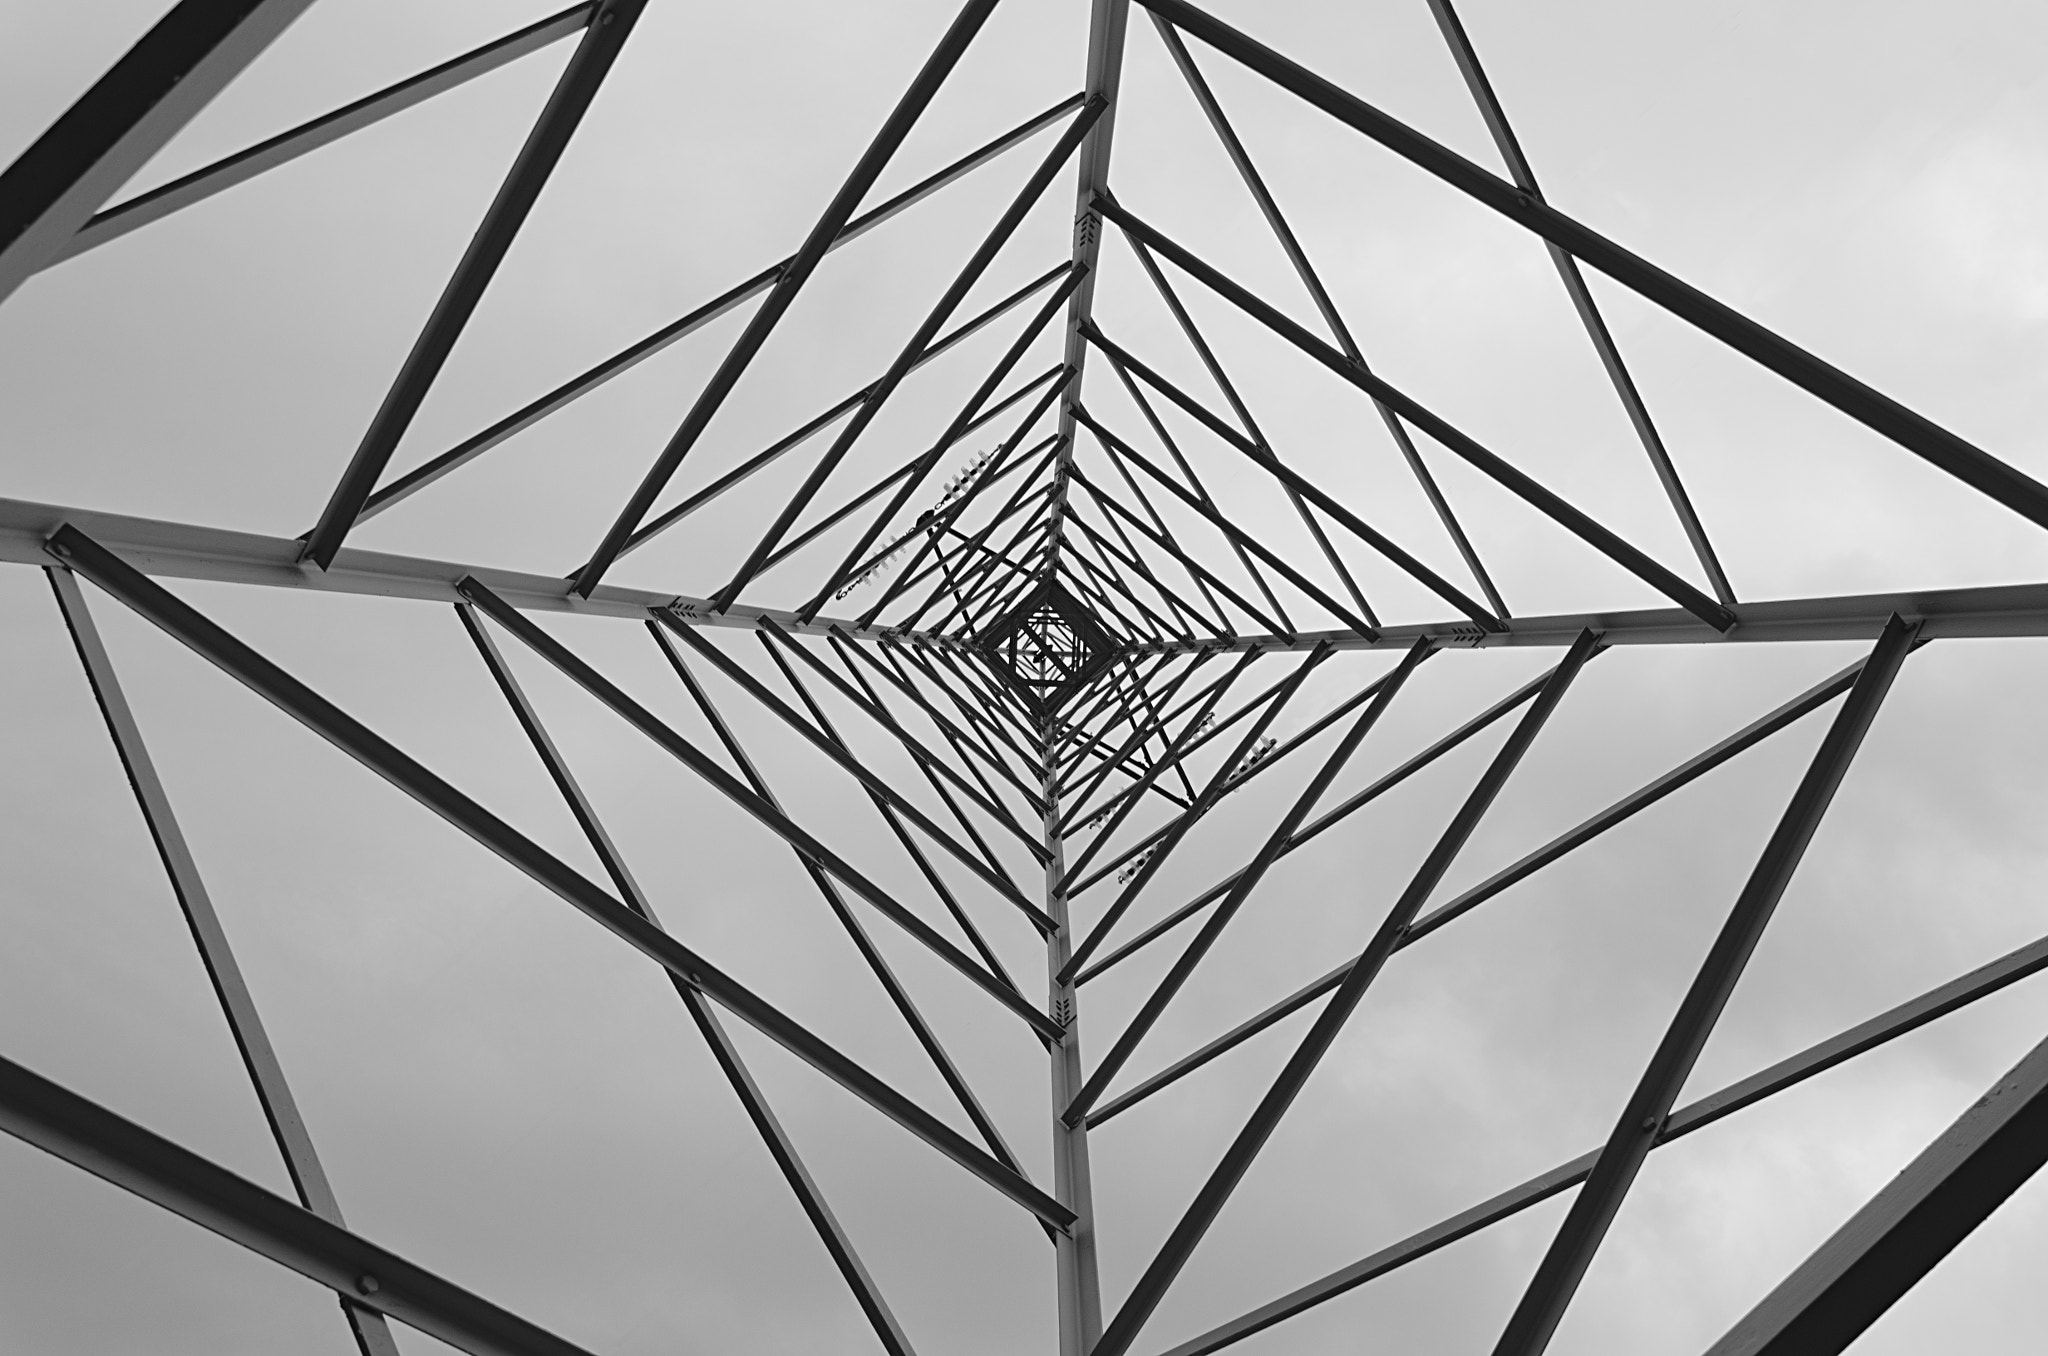 Photograph Vertices by M. Vich on 500px